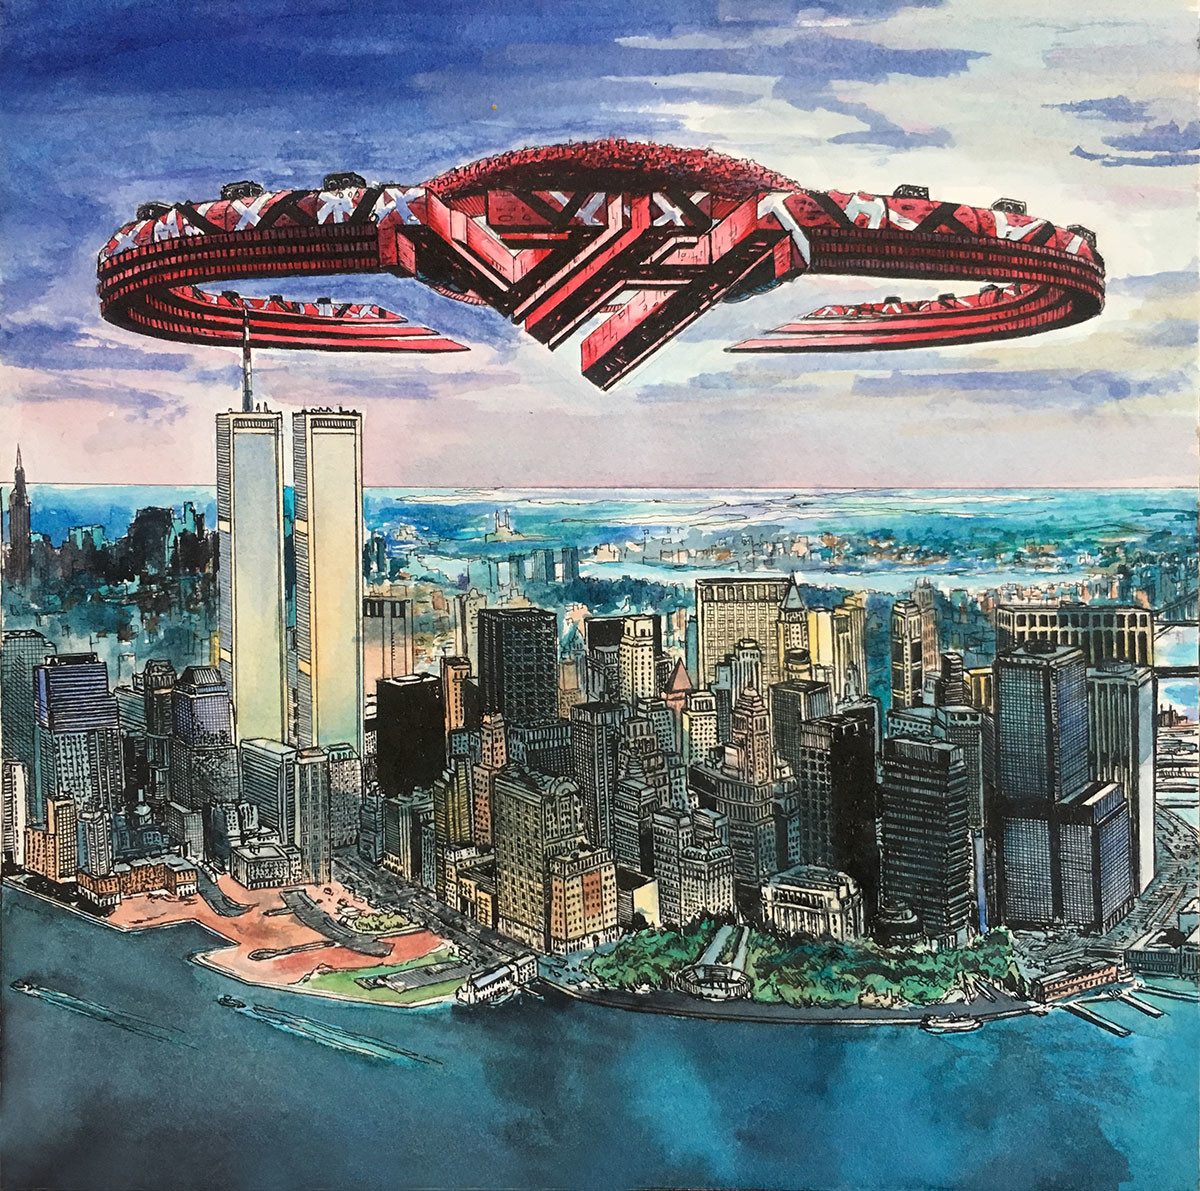 """8"""" x 8' pen and ink colored with watercolor. This was a fun attempt to create album artwork for my favorite band, Van Halen. It was done before September 11th, 2001. I had mailed a copy to the band shortly before that and received a positive response."""